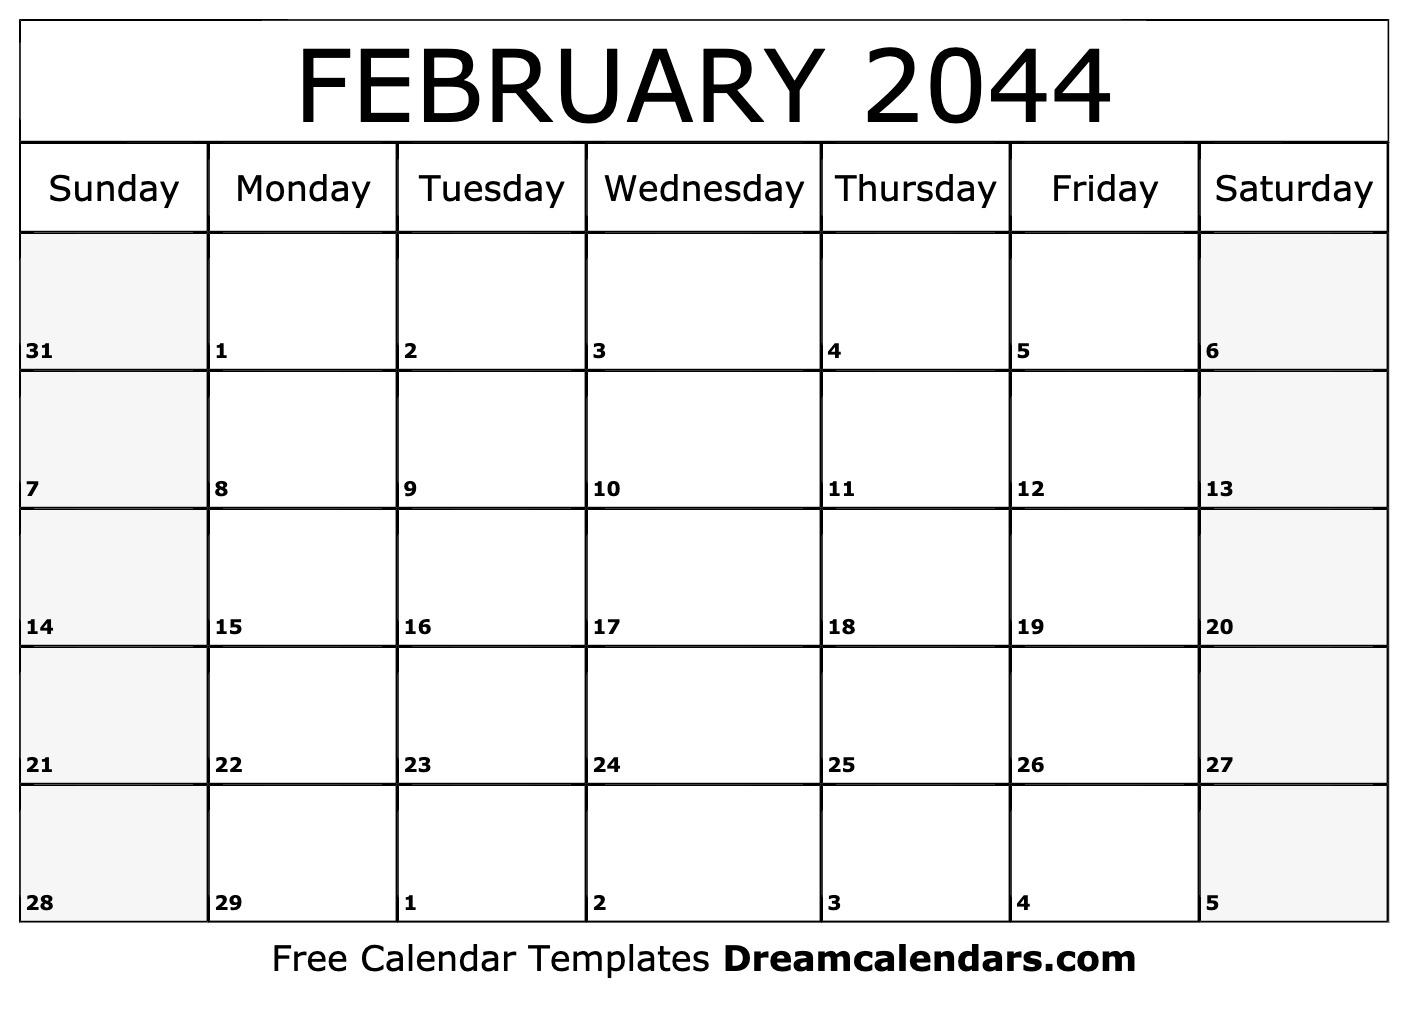 image about Calendar February Printable known as Printable February 2044 Calendar